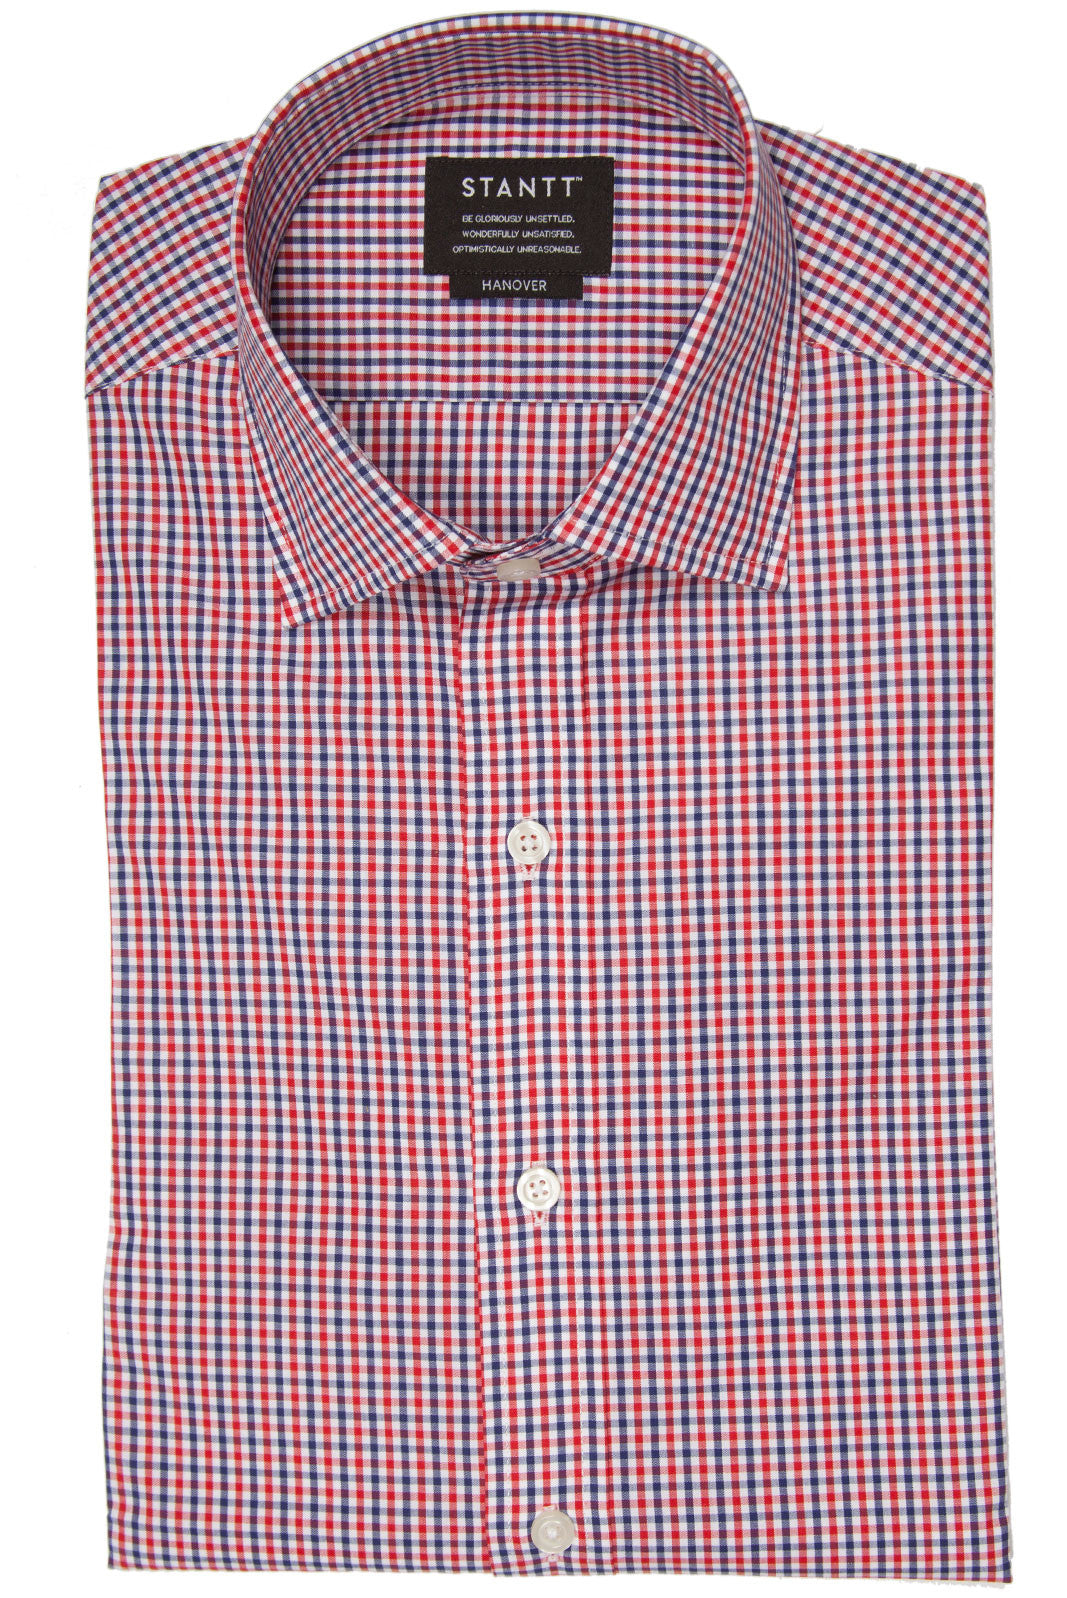 Navy and Red Gingham: Modified Spread Collar, French Cuff